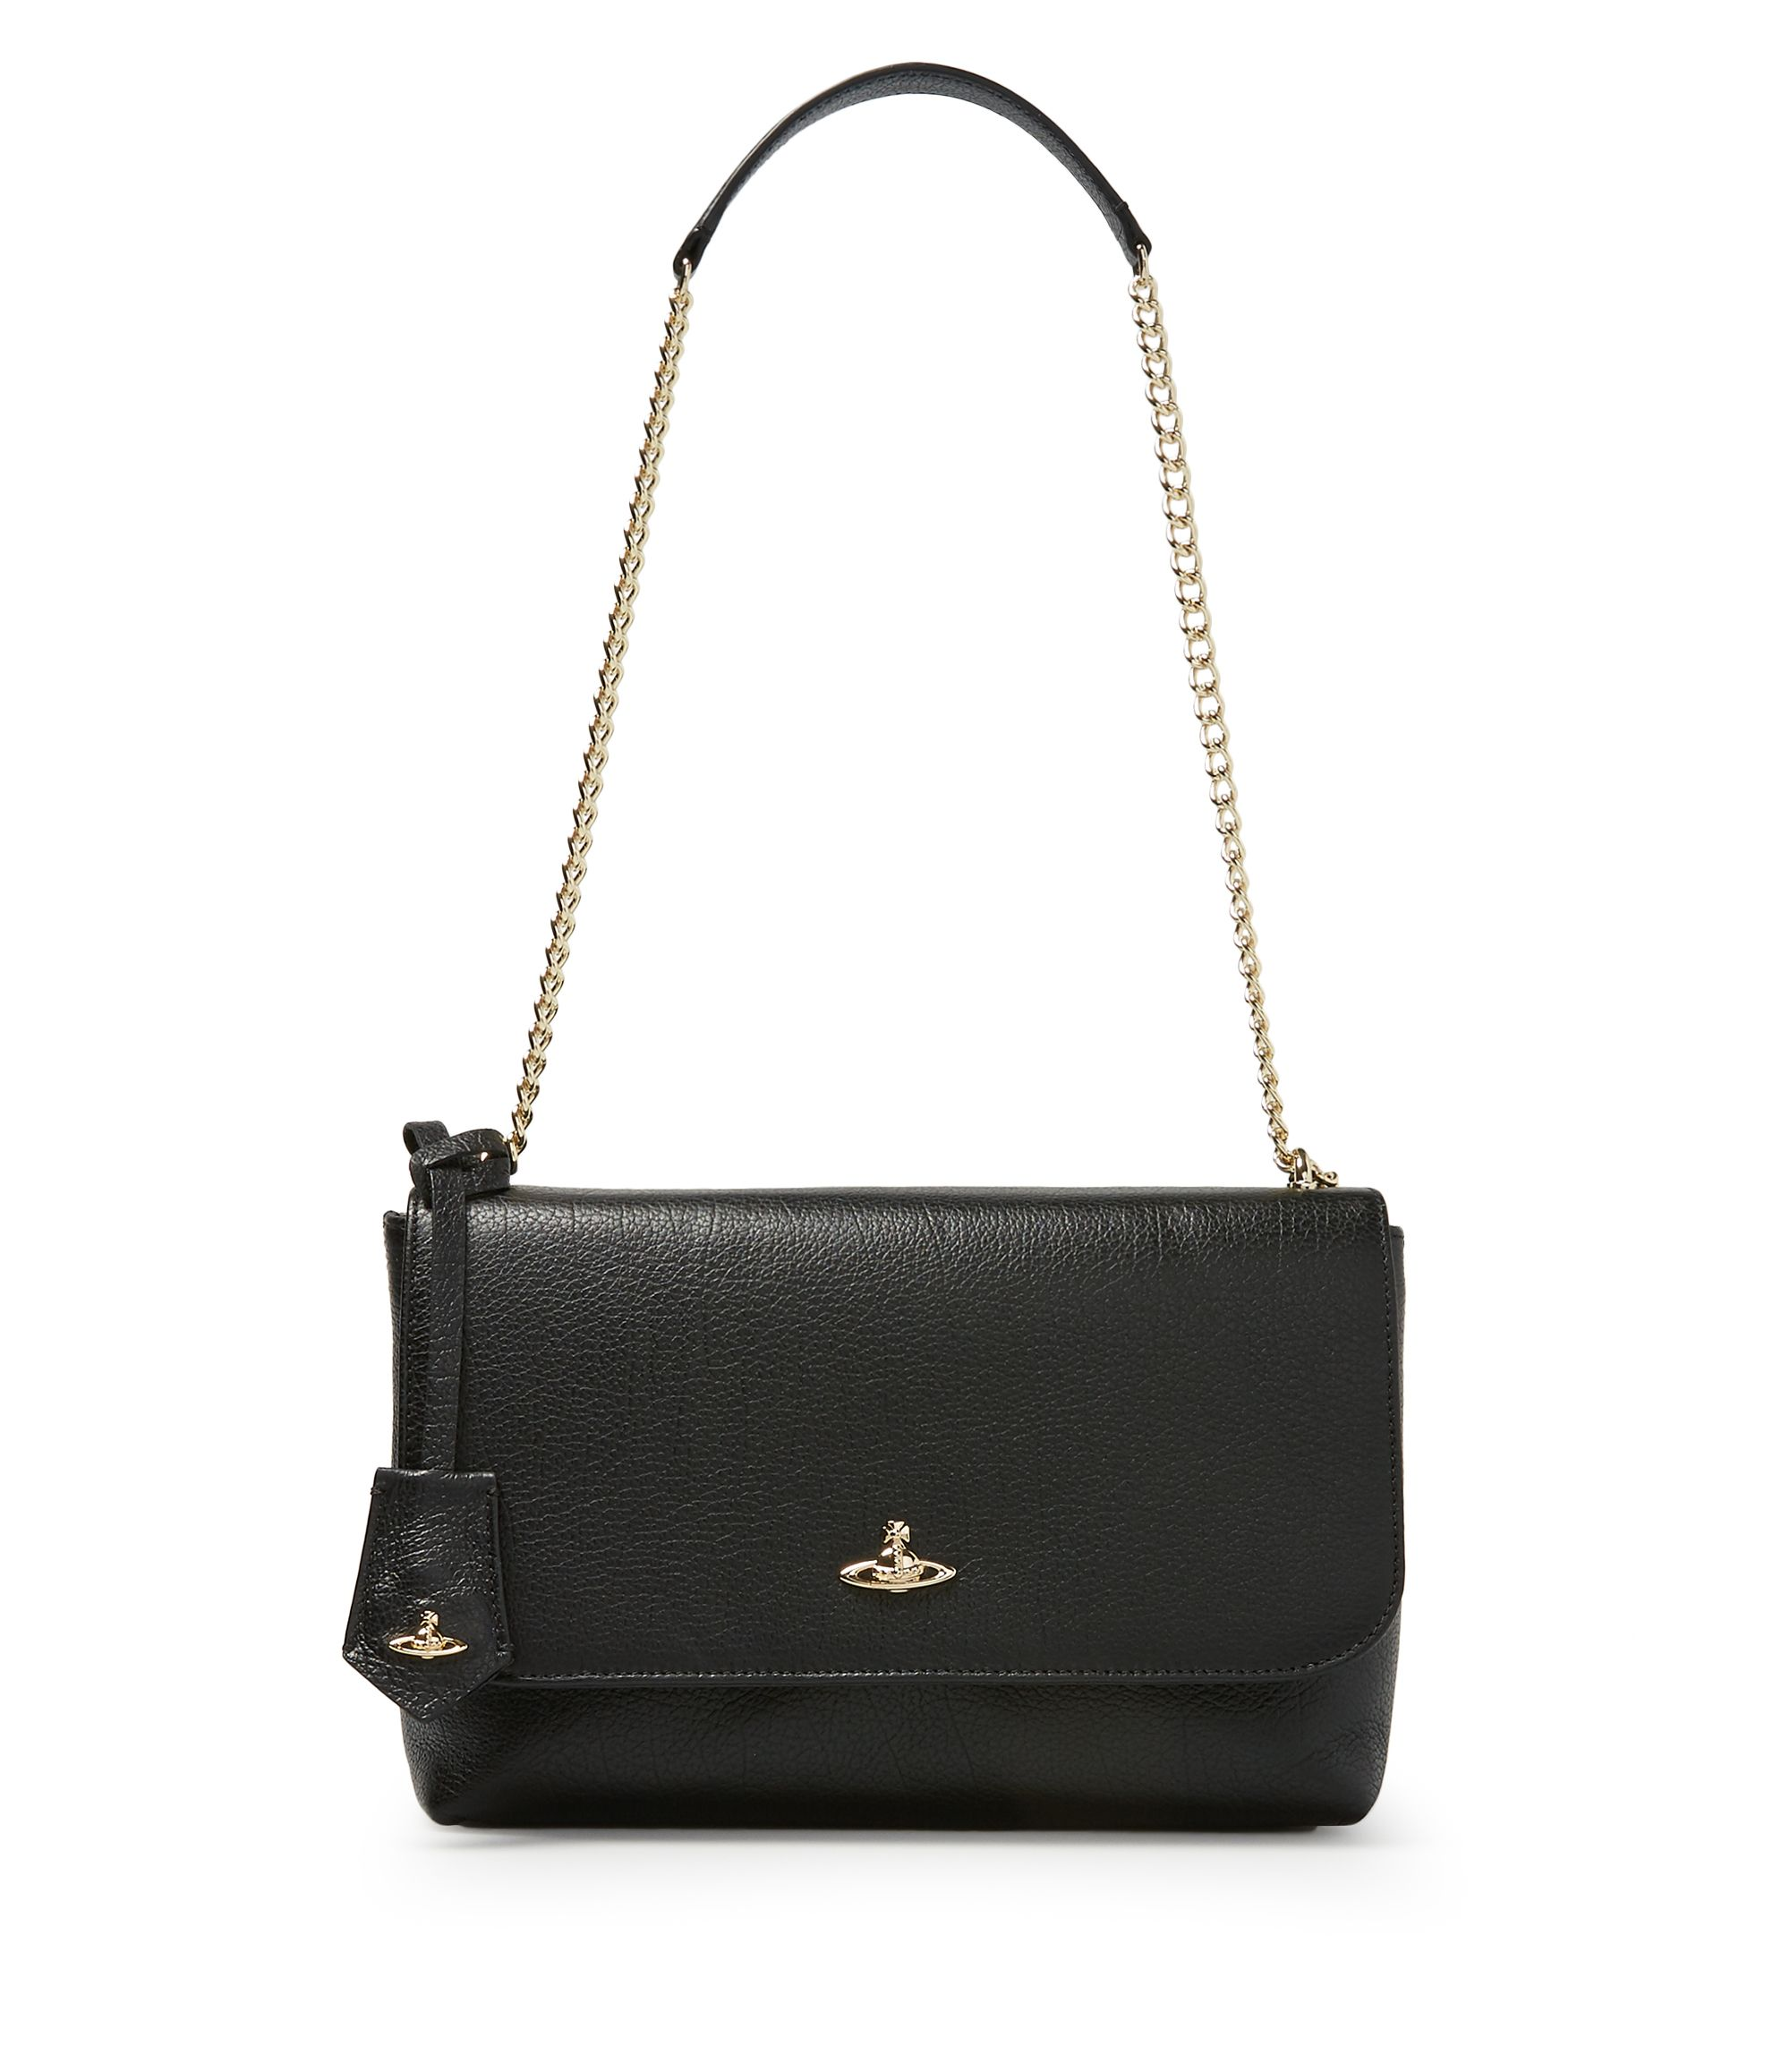 c0a458fe47f7 VIVIENNE WESTWOOD Large Balmoral Bag With Flap 131116 Black.   viviennewestwood  bags  shoulder bags  leather